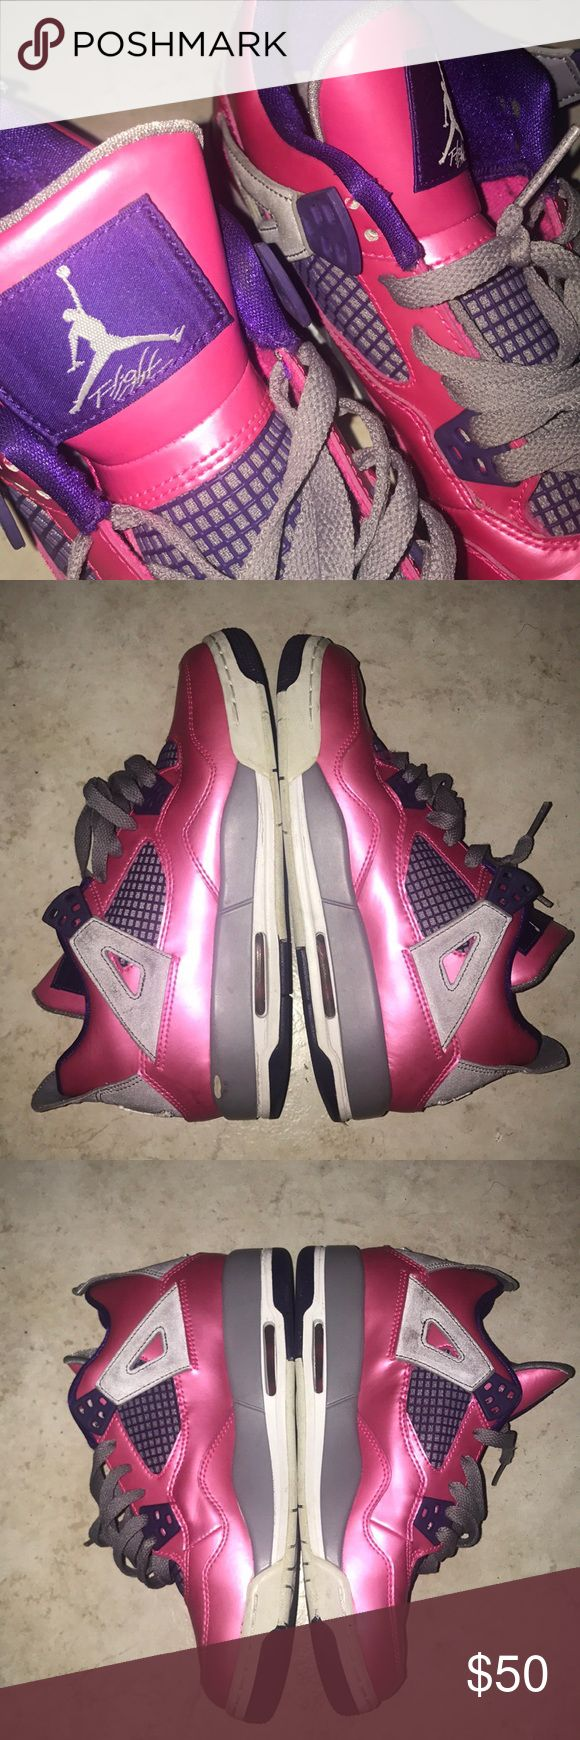 Nike air Jordan Retro 4 kids women size 5.5 You are buying a pair of Nike air Jordan retro 4s for women or kids. This is size 5.5 in girls, so women who fit that size can wear it too. Ok now maybe a male who fit that size can wear it too but that's up to him.  Ok now, as you can see the condition of these shoes are still in great shape. What you see in this picture is what you will be getting. They come with original laces and insoles. I would give these shoes like an 8.5 out of 10 because…